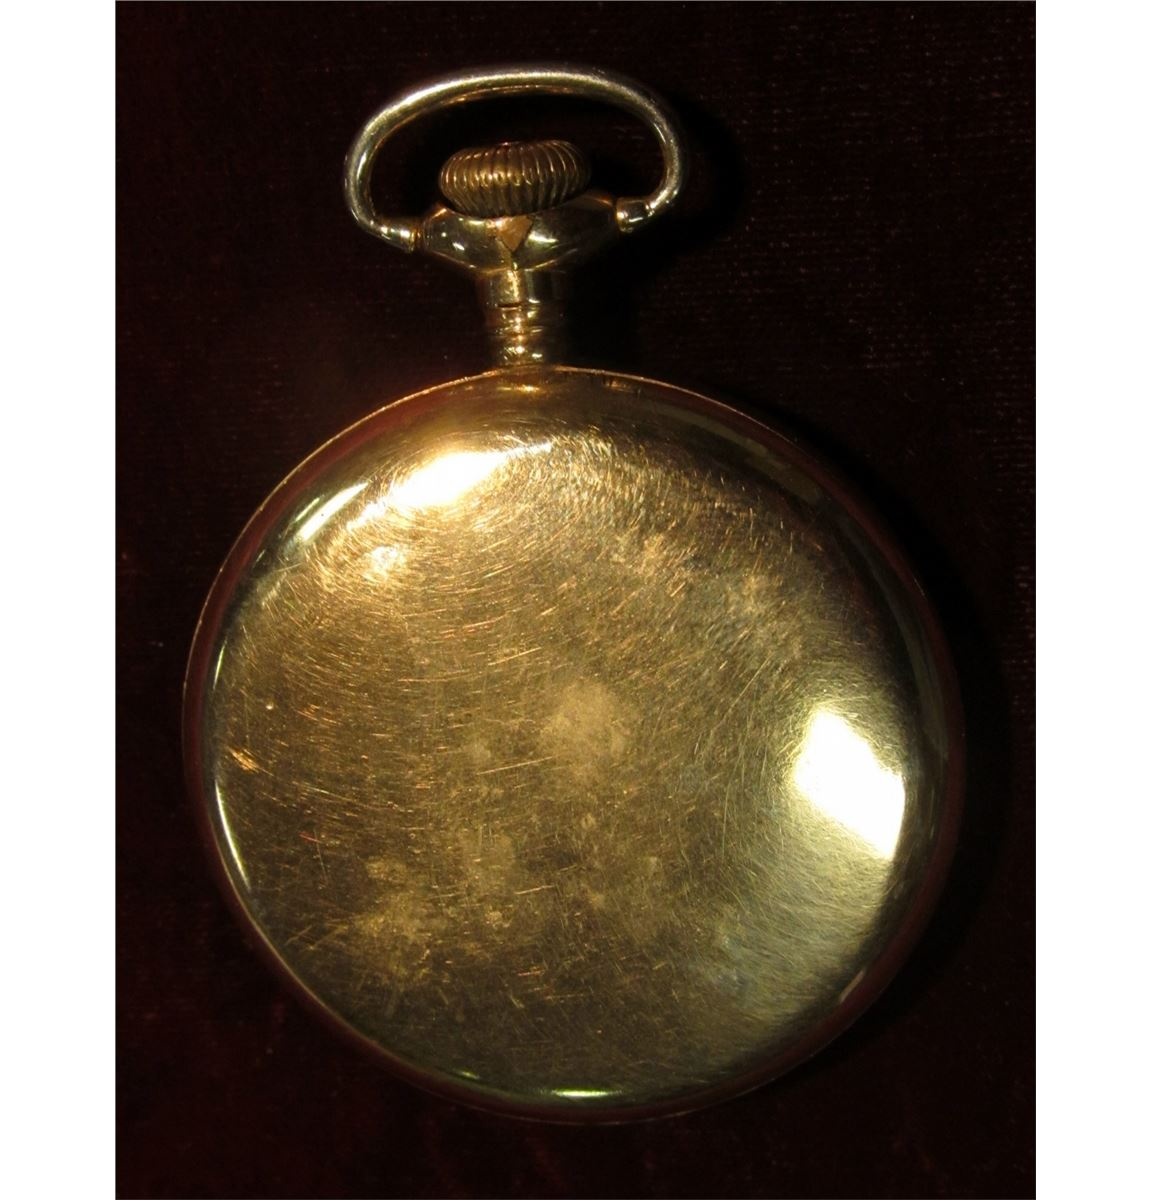 Dating pocket watch serial number